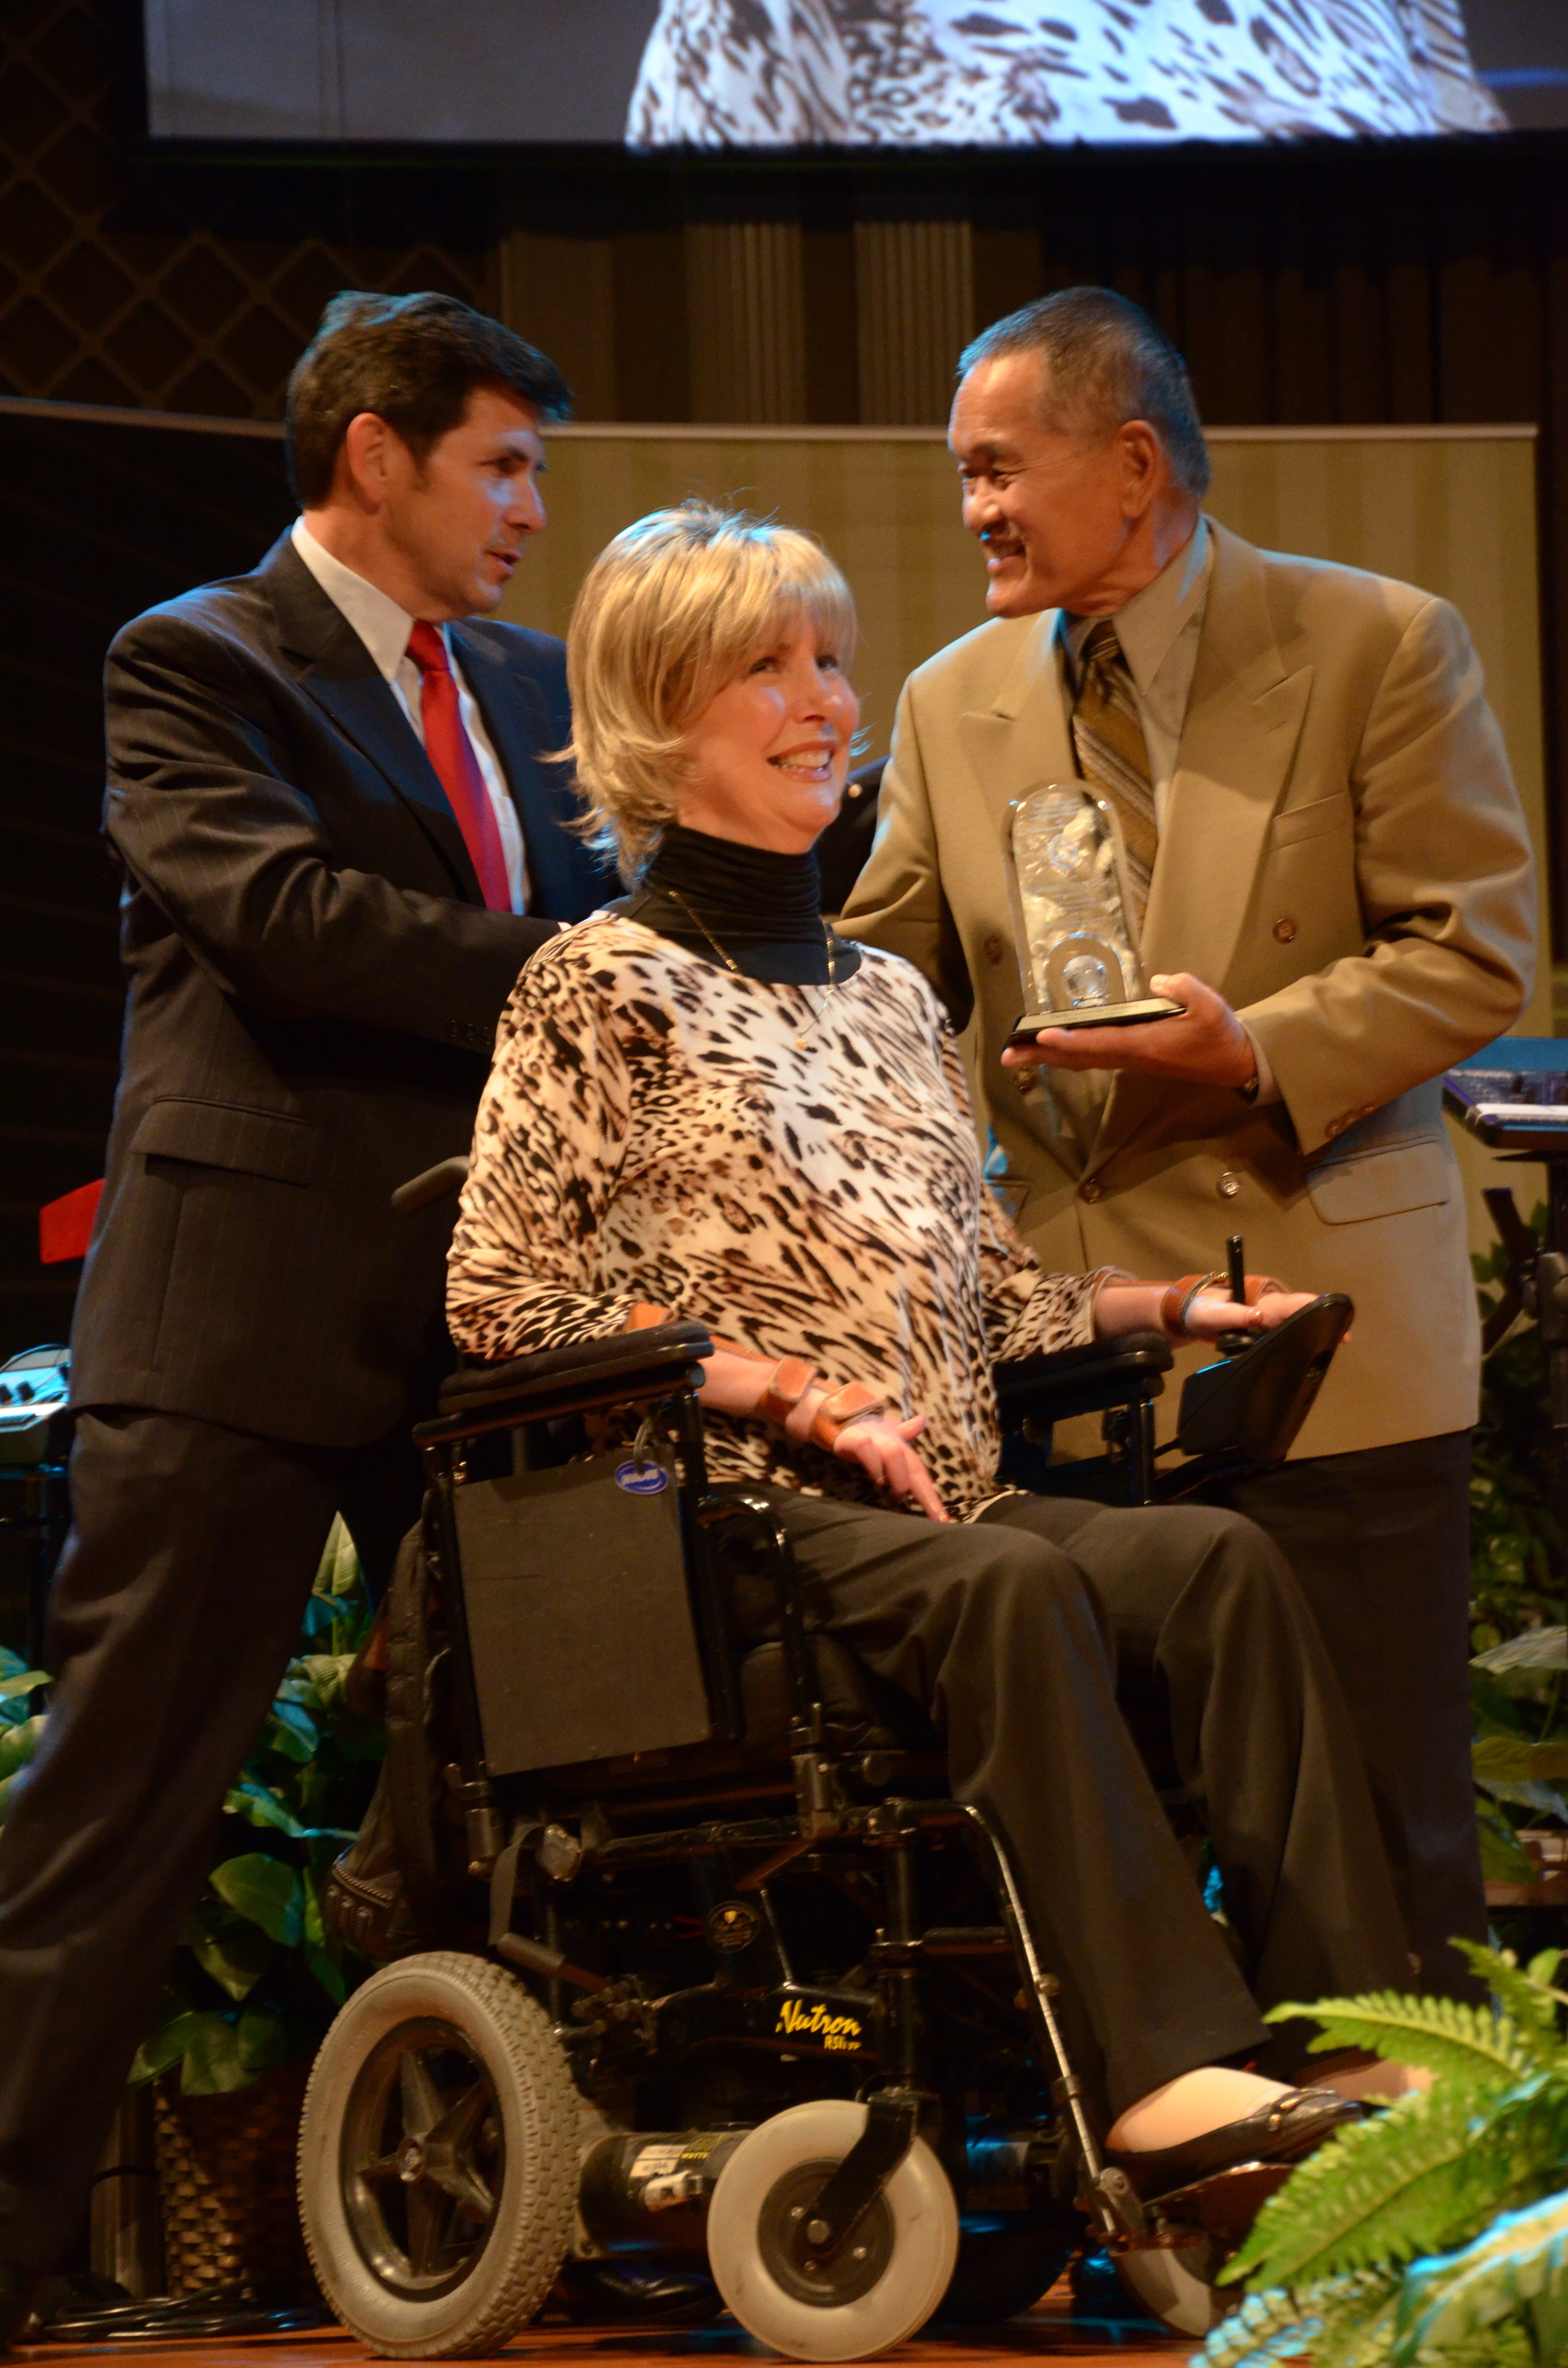 JoniEareckson Tada, along with her husband Ken, receives an award from theDirector for Christian Worldview and Apologetics at North Greenville University.,Alex McFarland at the TNG conference in Spartanburg.